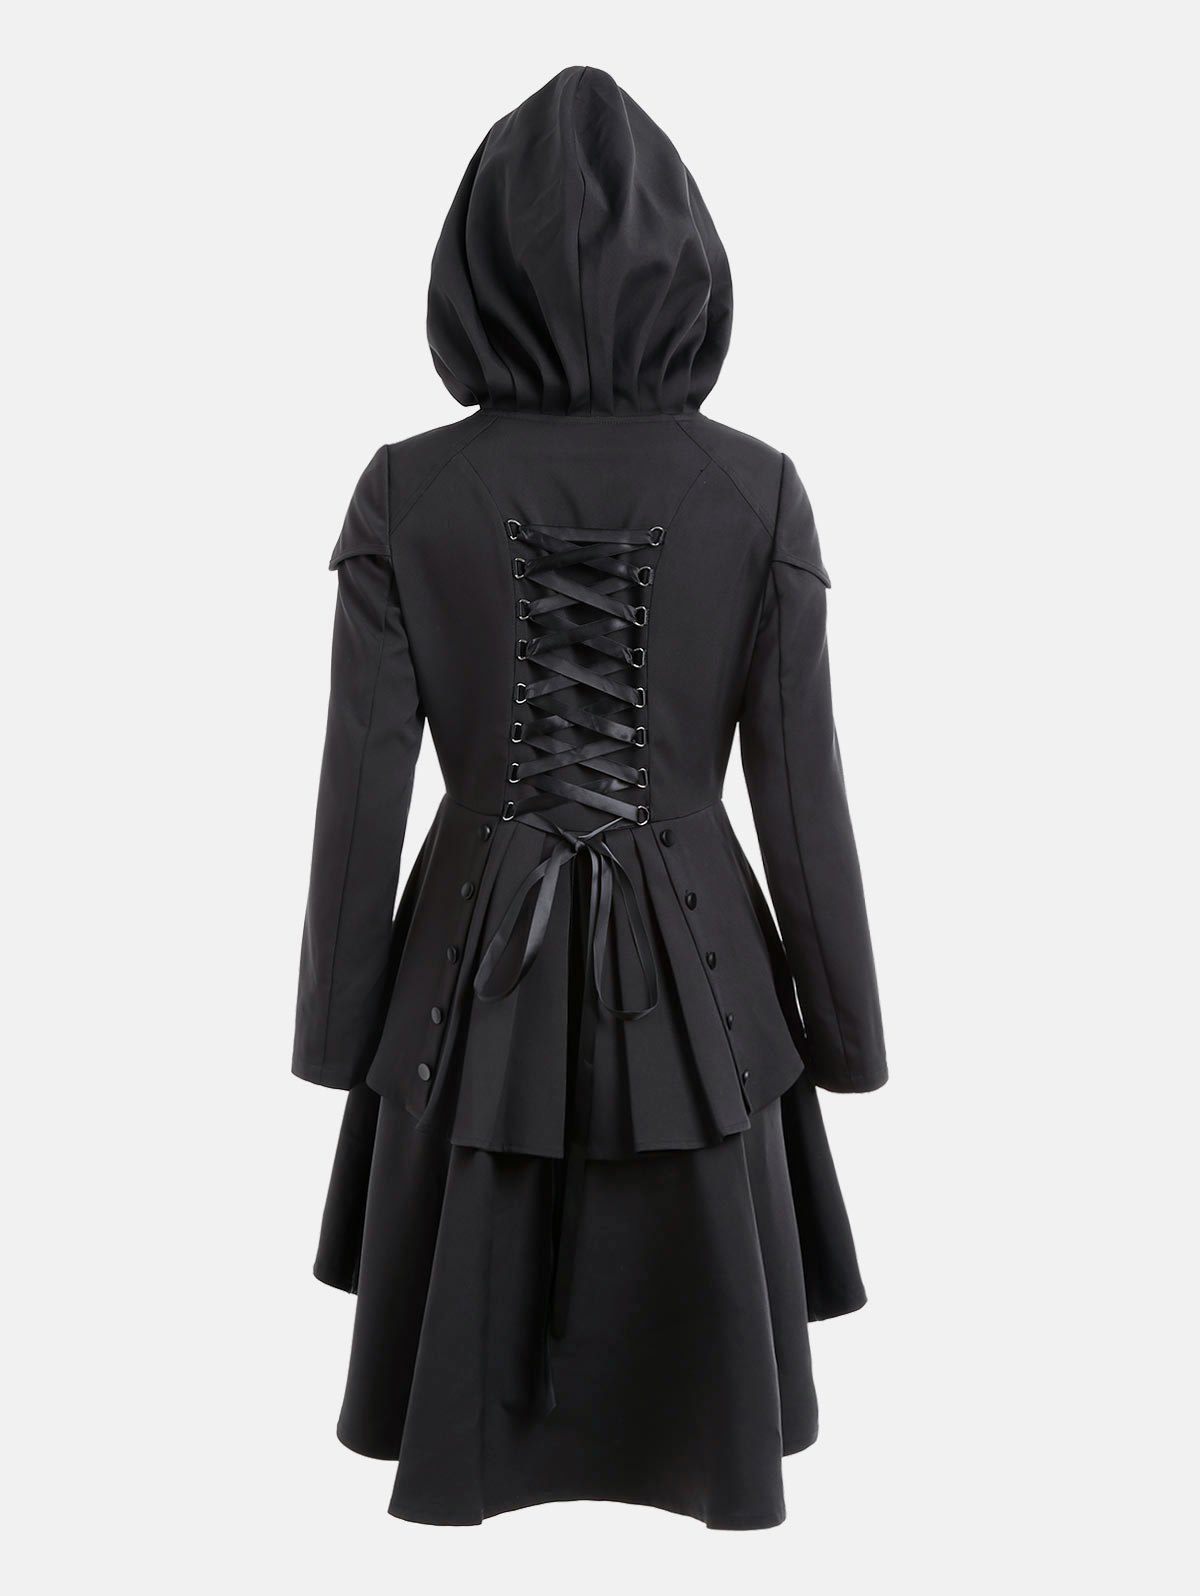 Lace Up Layered High Low Hooded CoatWOMEN<br><br>Size: 2XL; Color: BLACK; Clothes Type: Others; Material: Polyester; Type: High Waist; Shirt Length: Long; Sleeve Length: Full; Collar: Hooded; Closure Type: Single Breasted; Pattern Type: Solid; Embellishment: Criss-Cross; Style: Gothic; Season: Fall,Spring; With Belt: No; Weight: 0.6600kg; Package Contents: 1 x Coat;